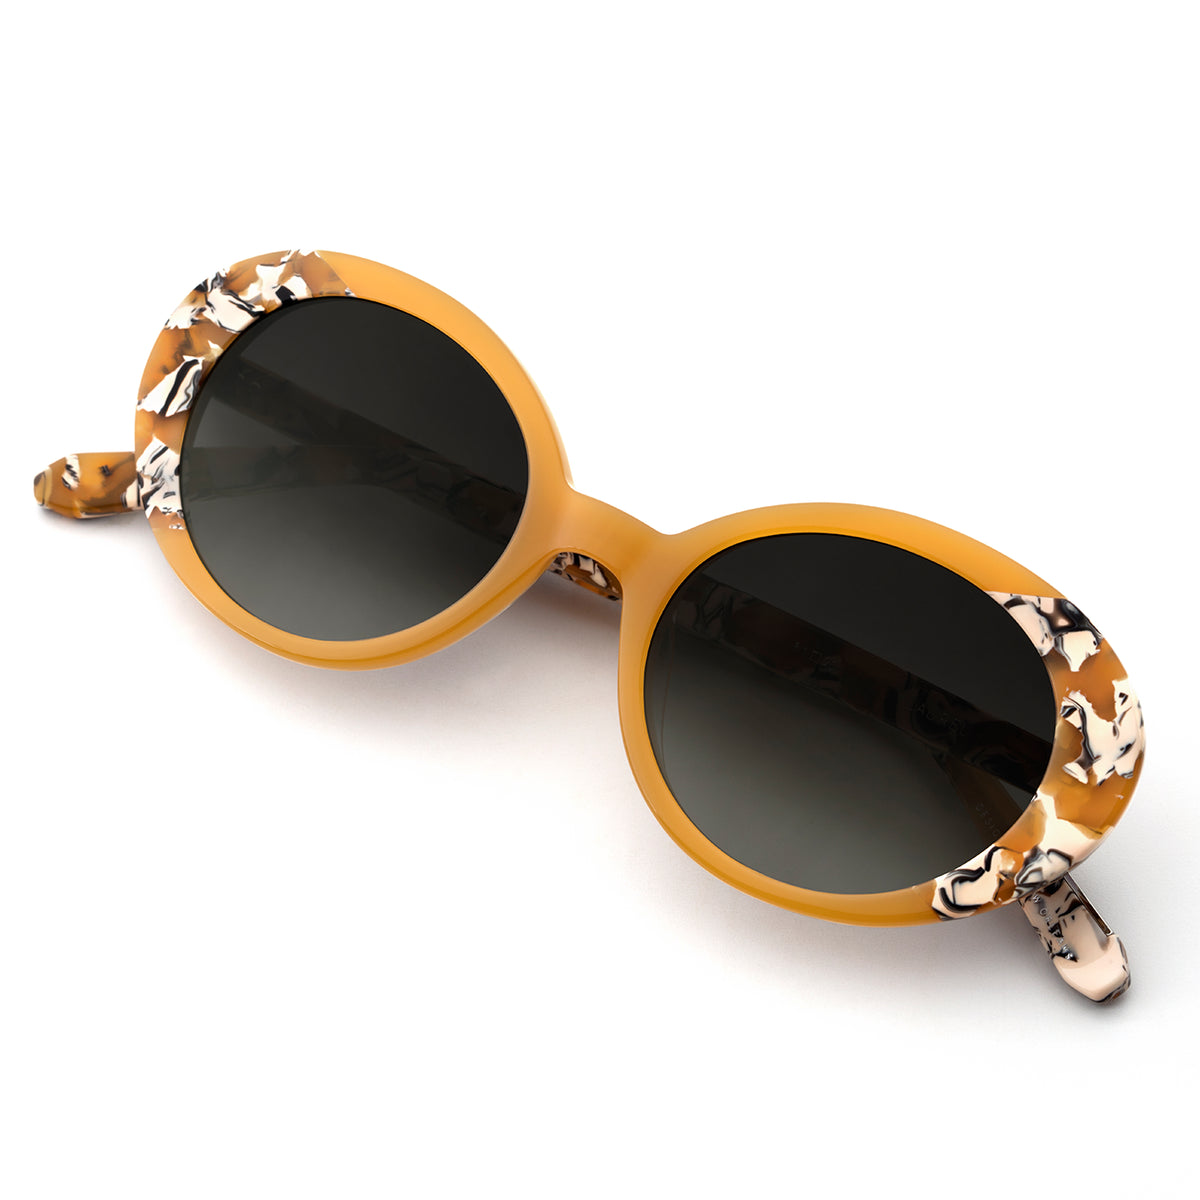 LAUREL | Brulee to Butterscotch handcrafted acetate sunglasses